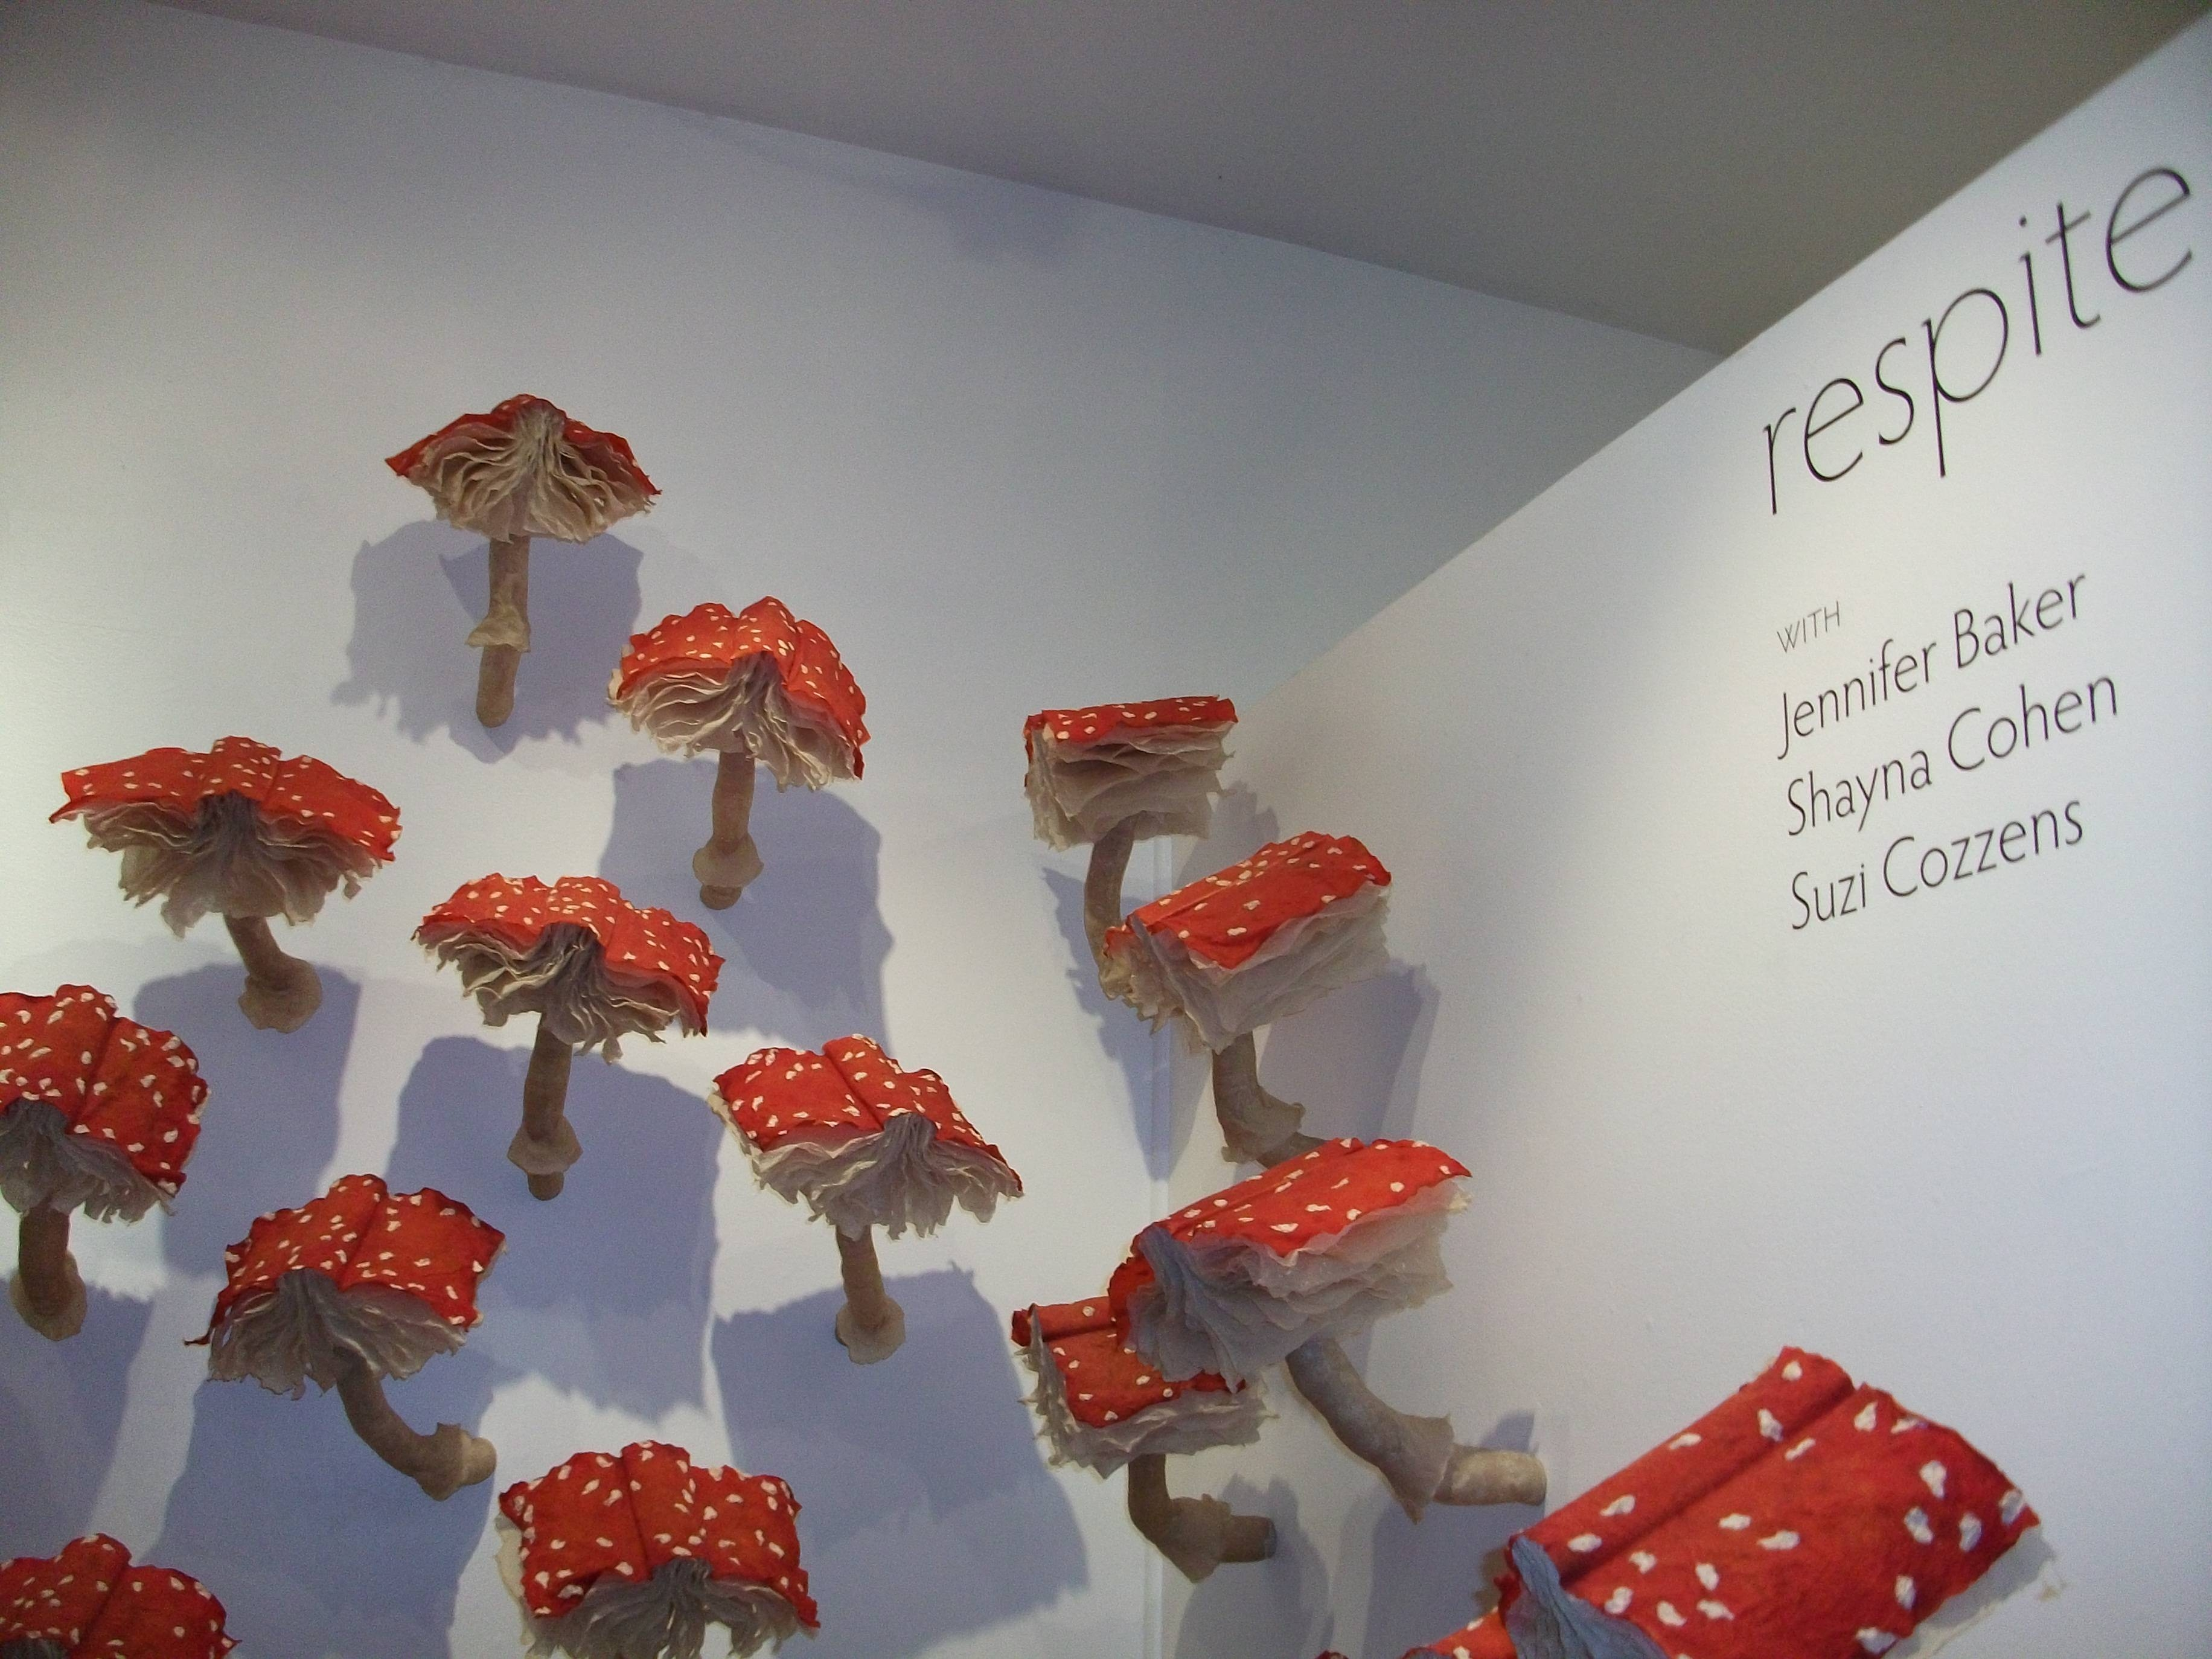 Partying In Pilsen Art Galleries | Tara & Karina Go Out Intended For Most Current Mushroom Wall Art (View 5 of 20)